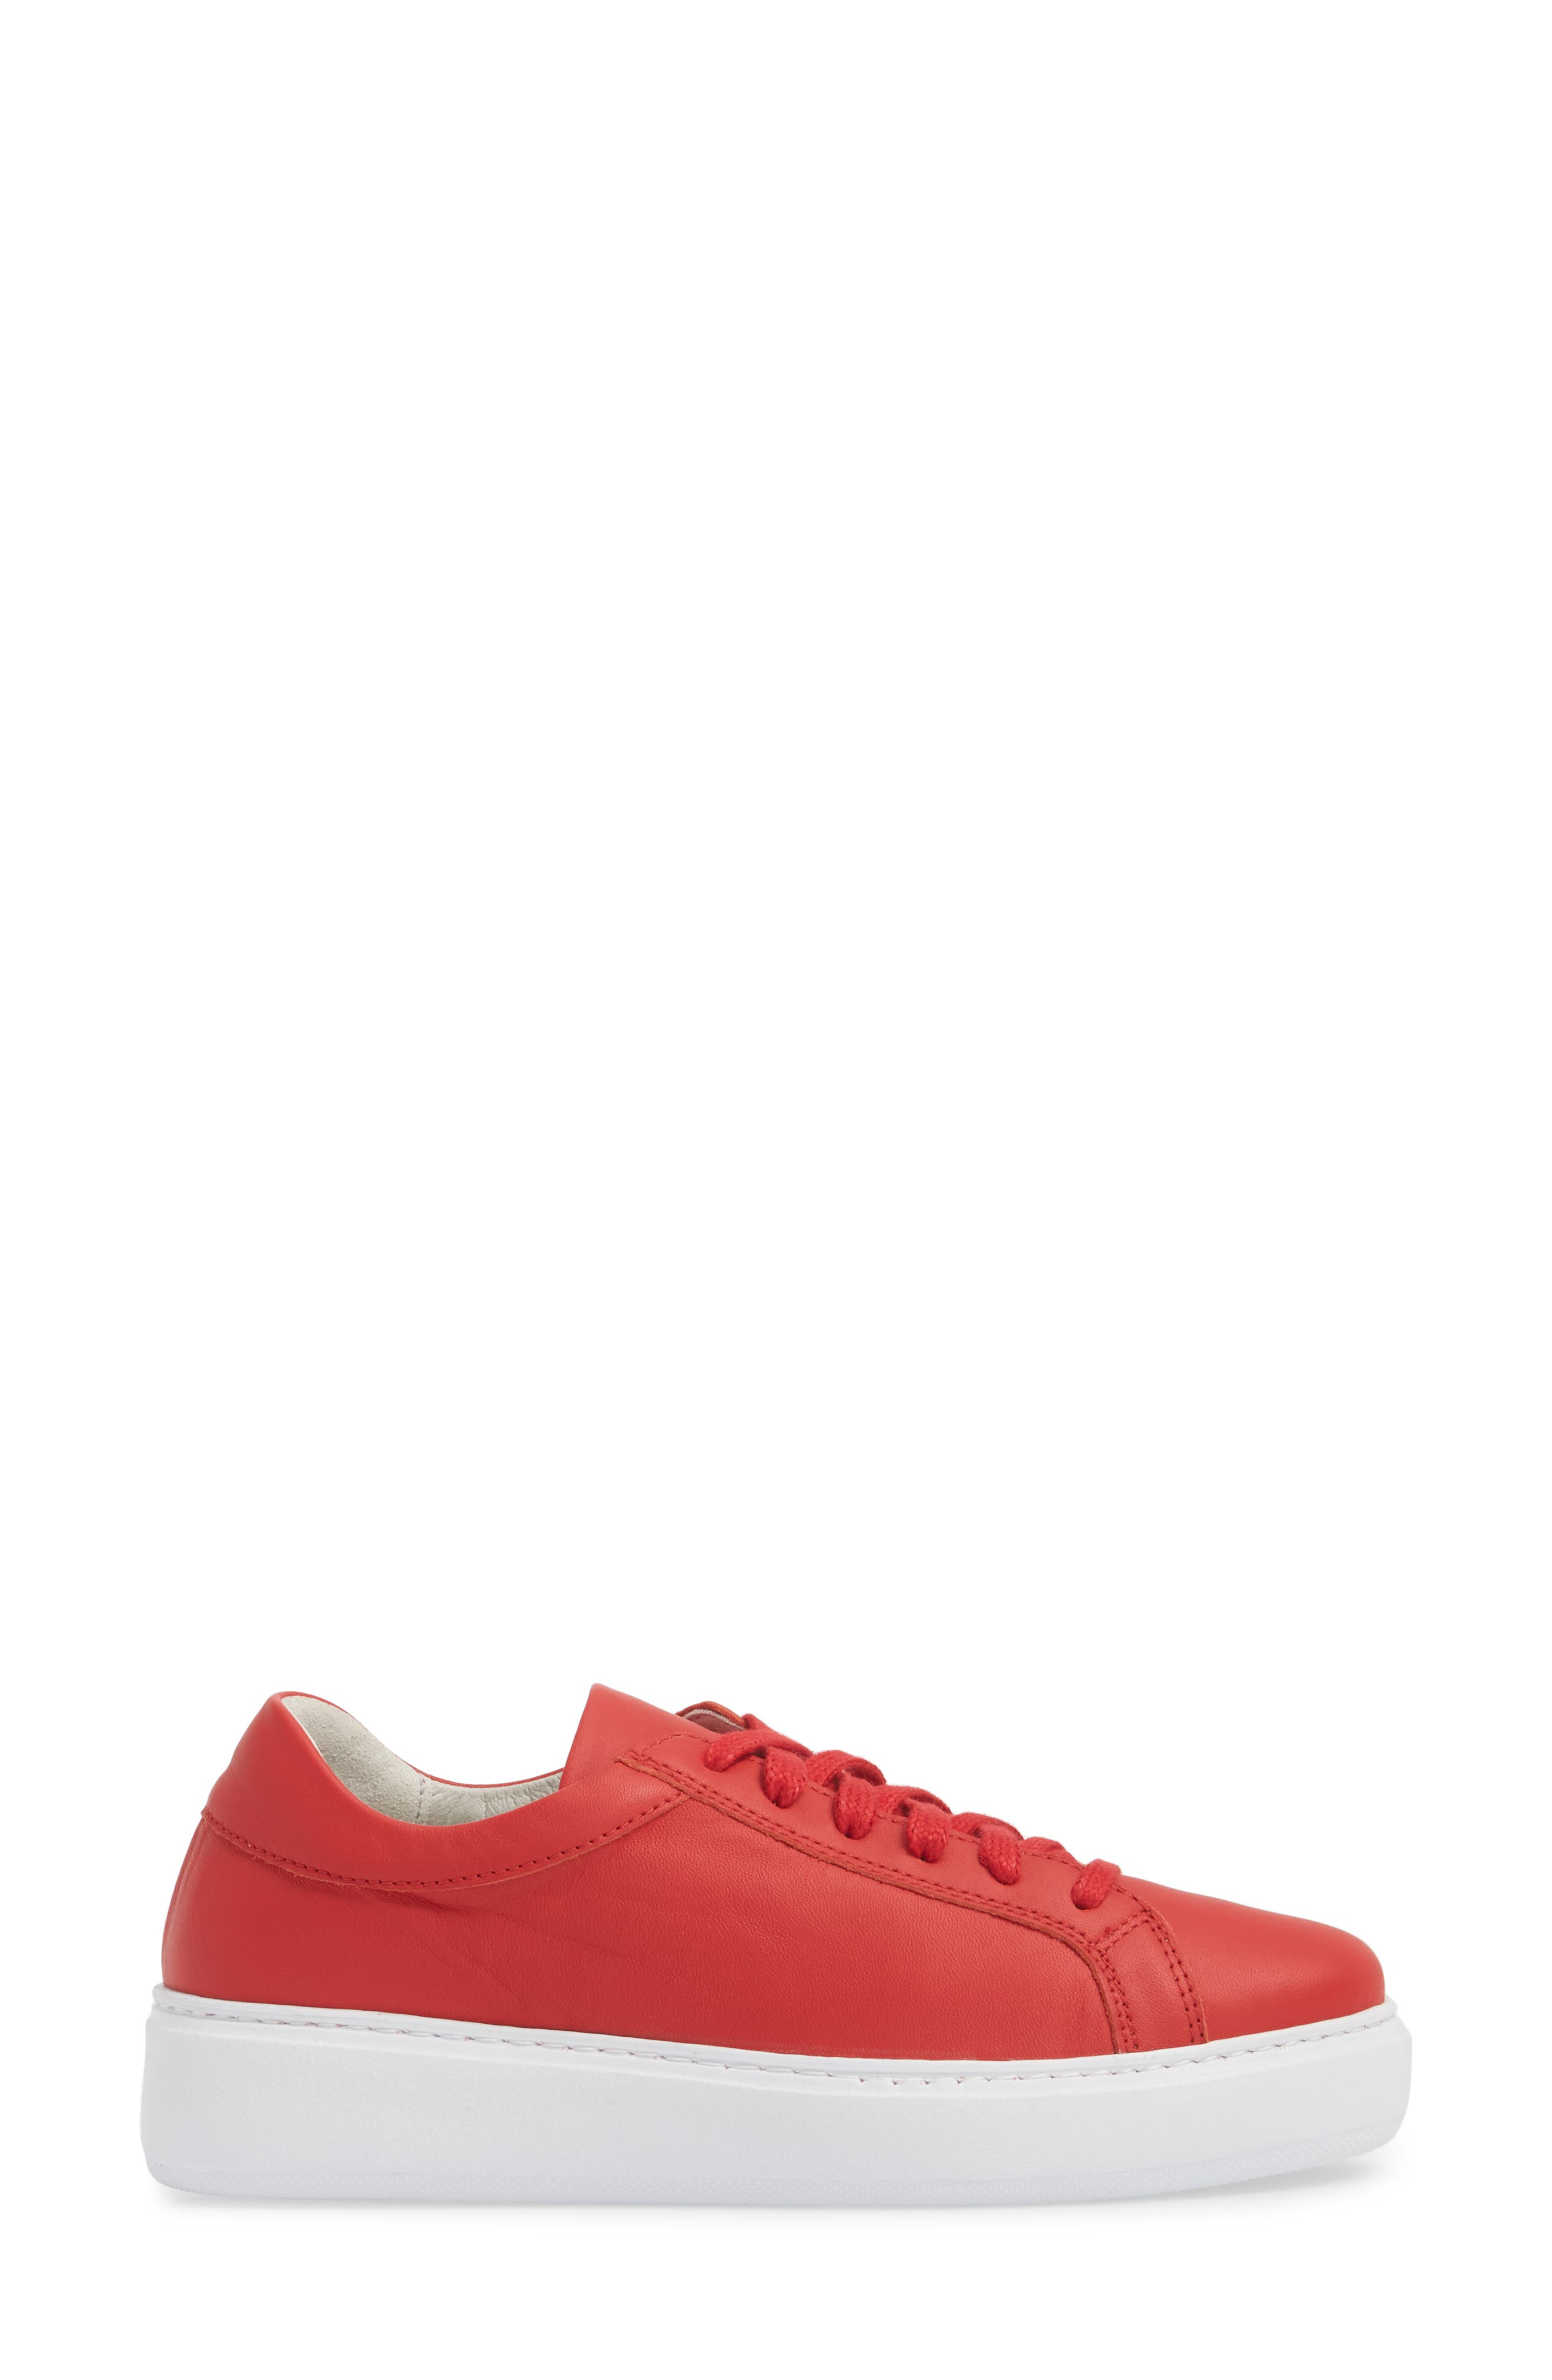 Tully Sneaker,                             Alternate thumbnail 3, color,                             Red Leather